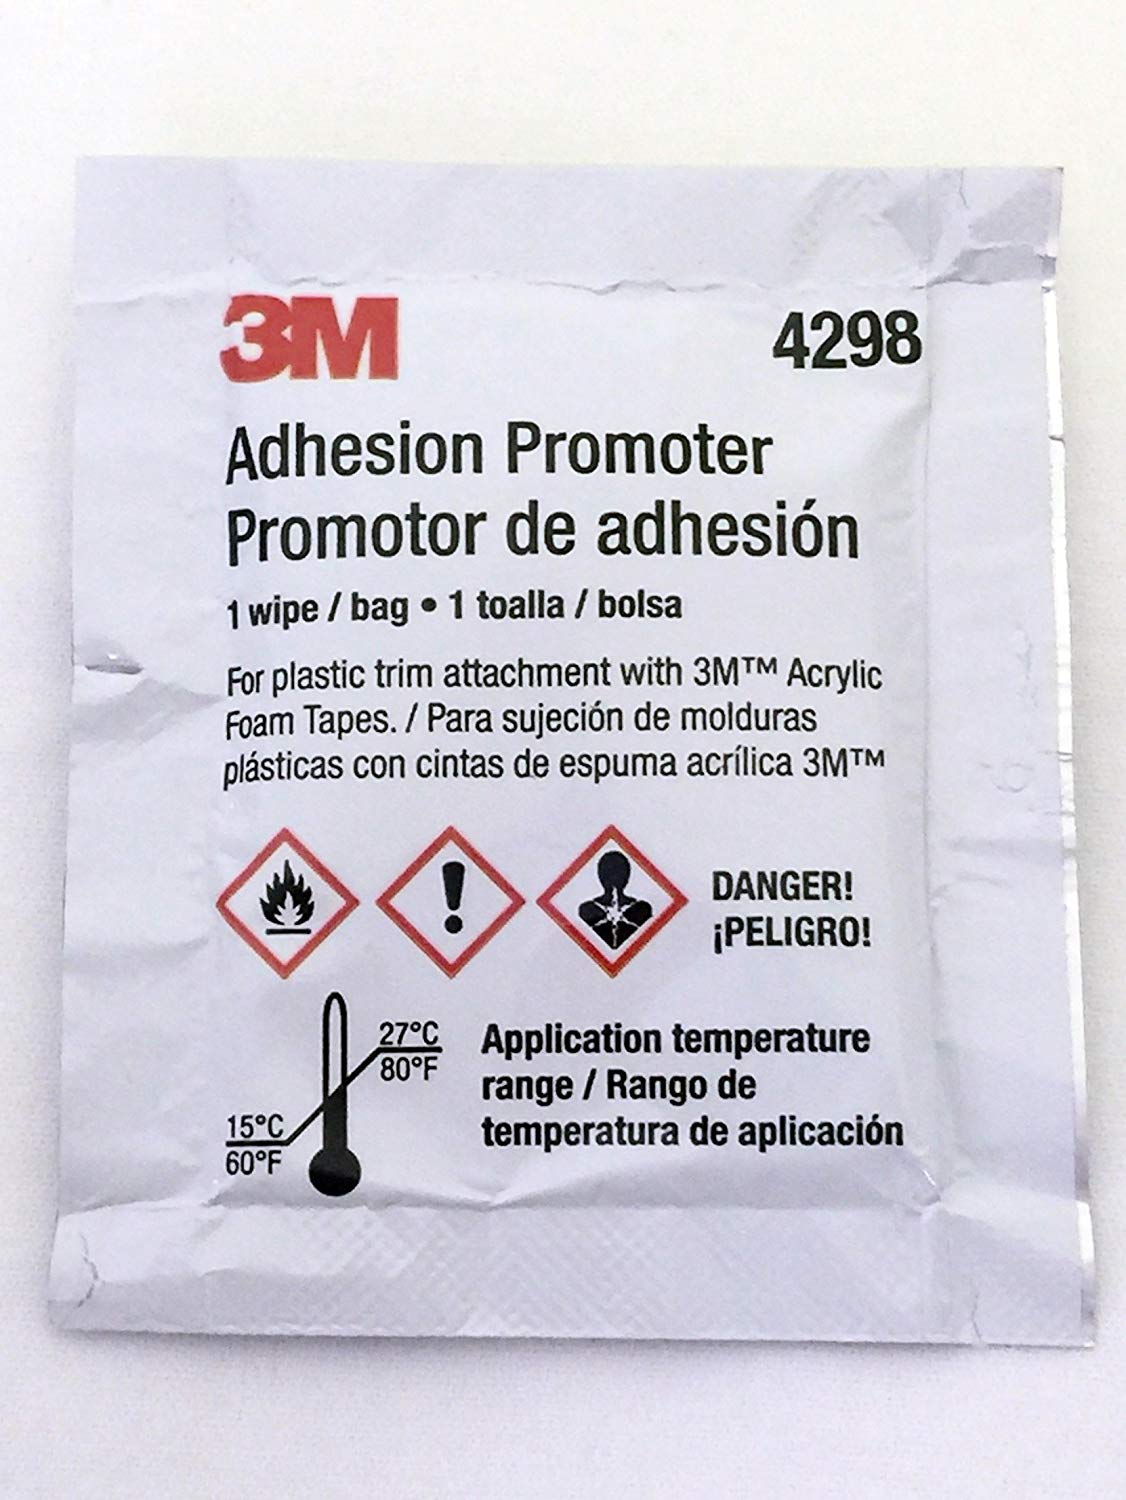 3M adh promoter1